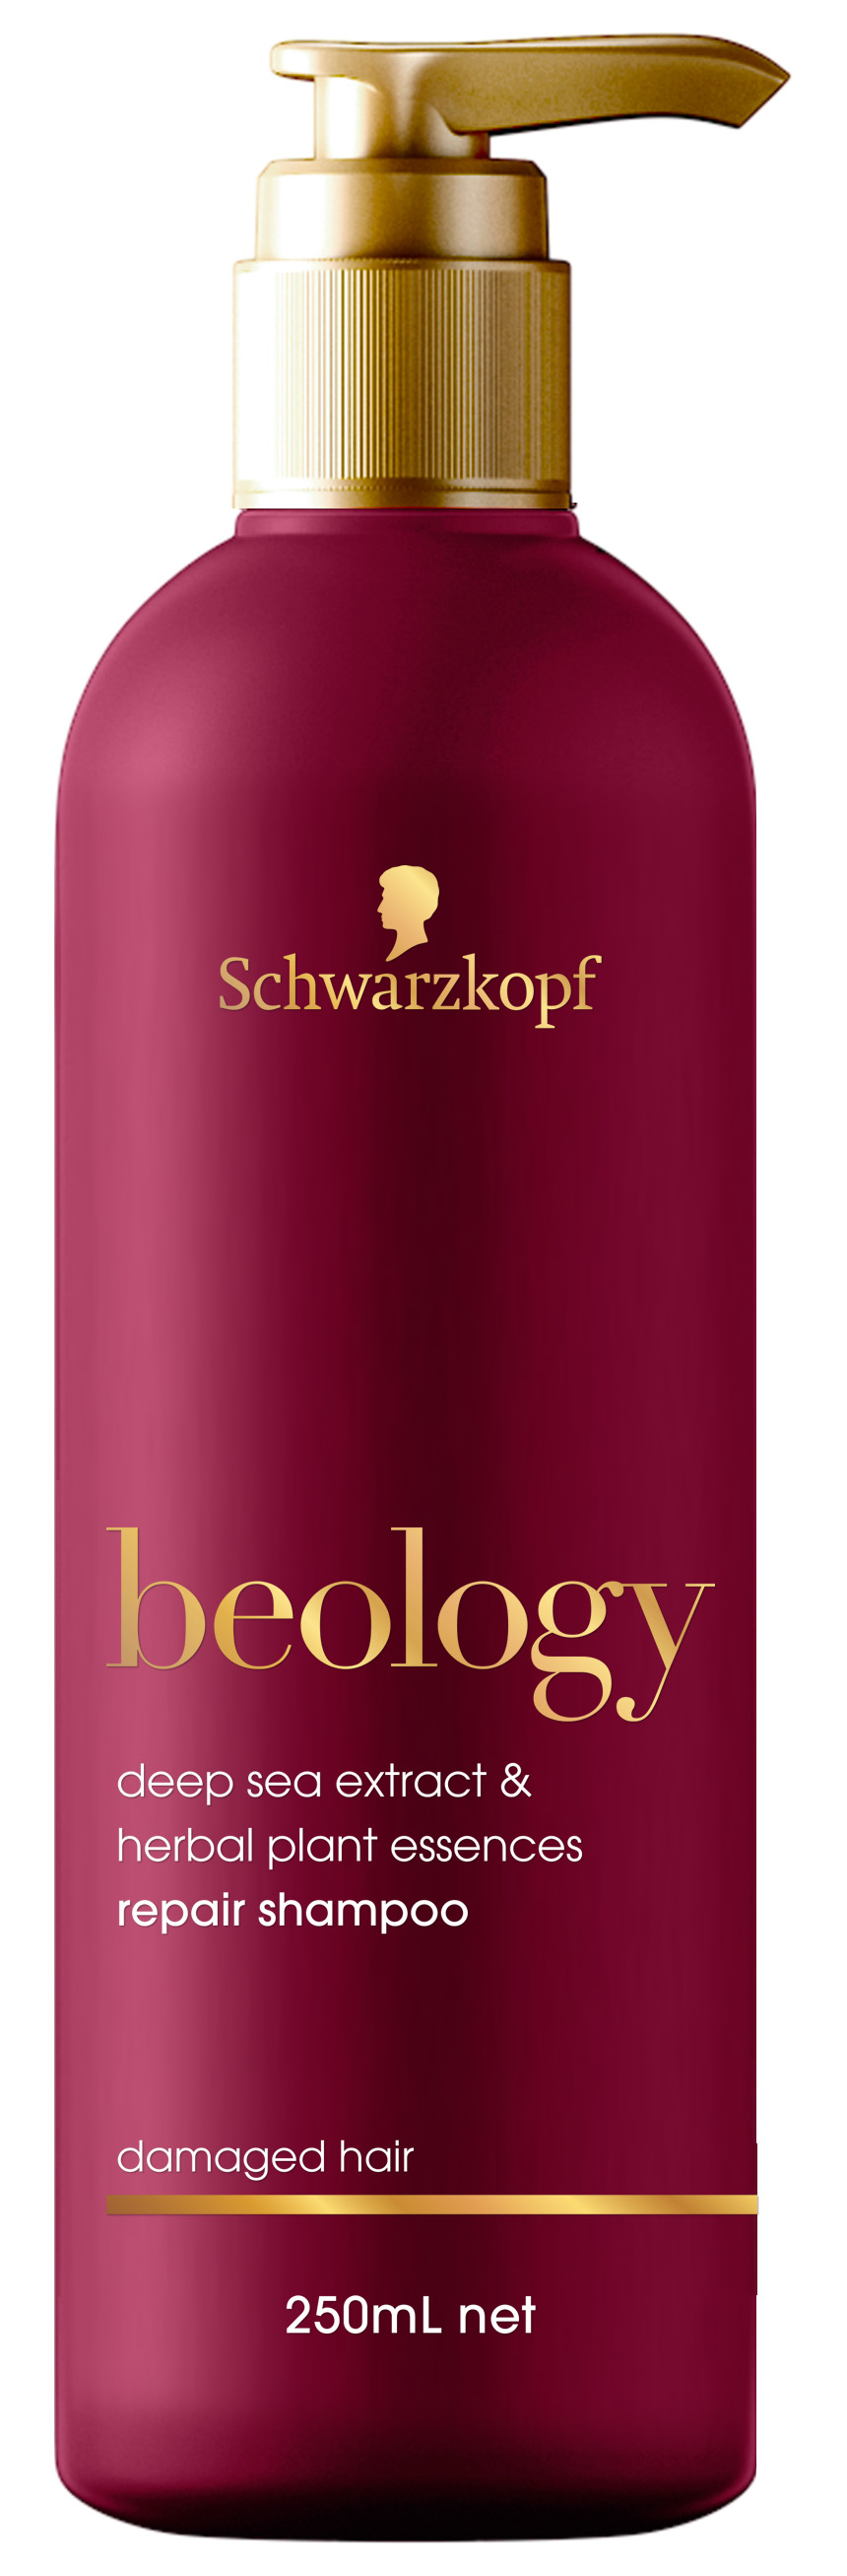 Beology_Repair_Shampoo_250ml (4) copy